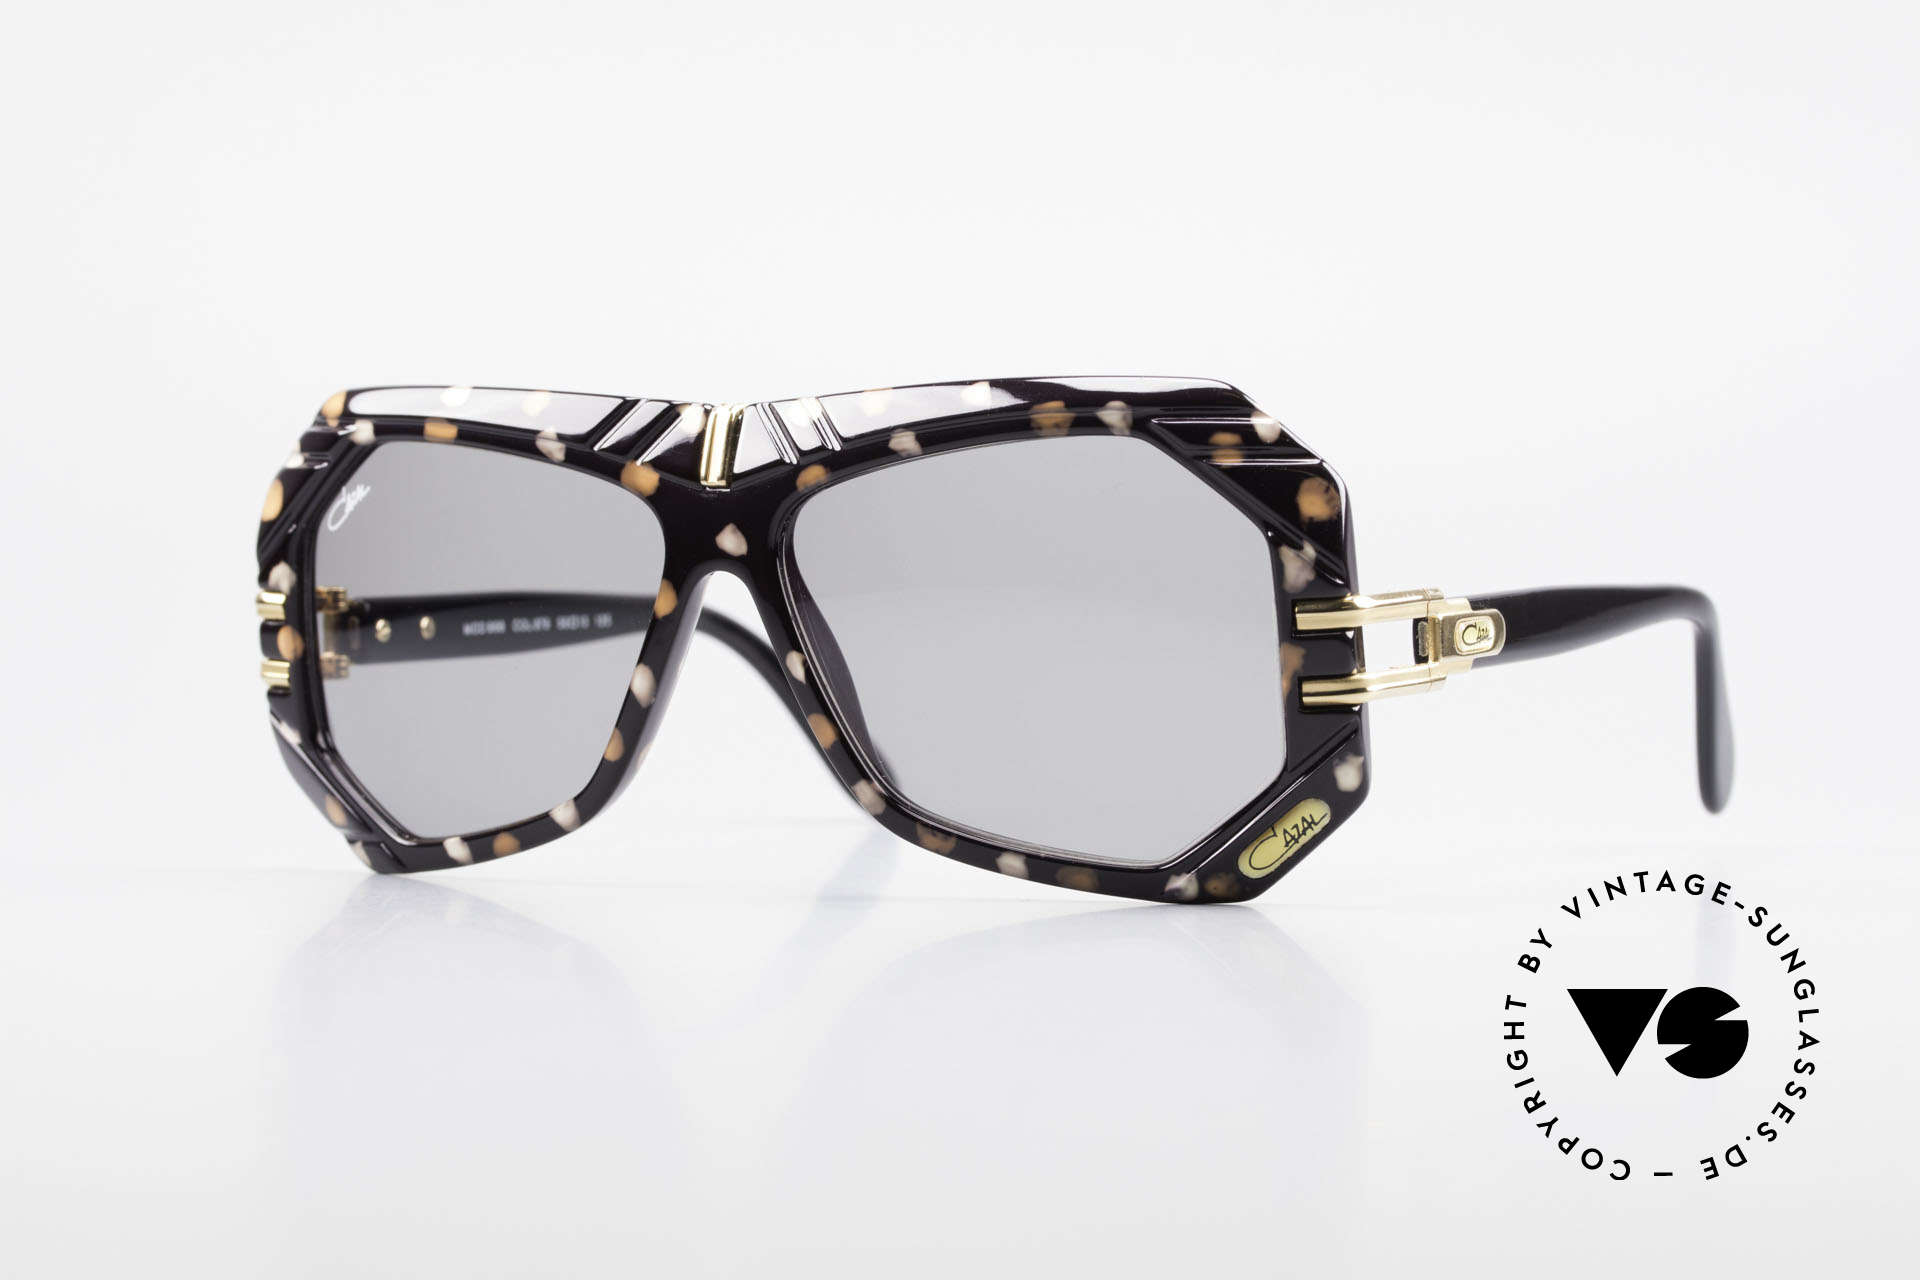 Cazal 868 West Germany Designer Shades, extraordinary designer sunglasses from 1989/90, Made for Men and Women